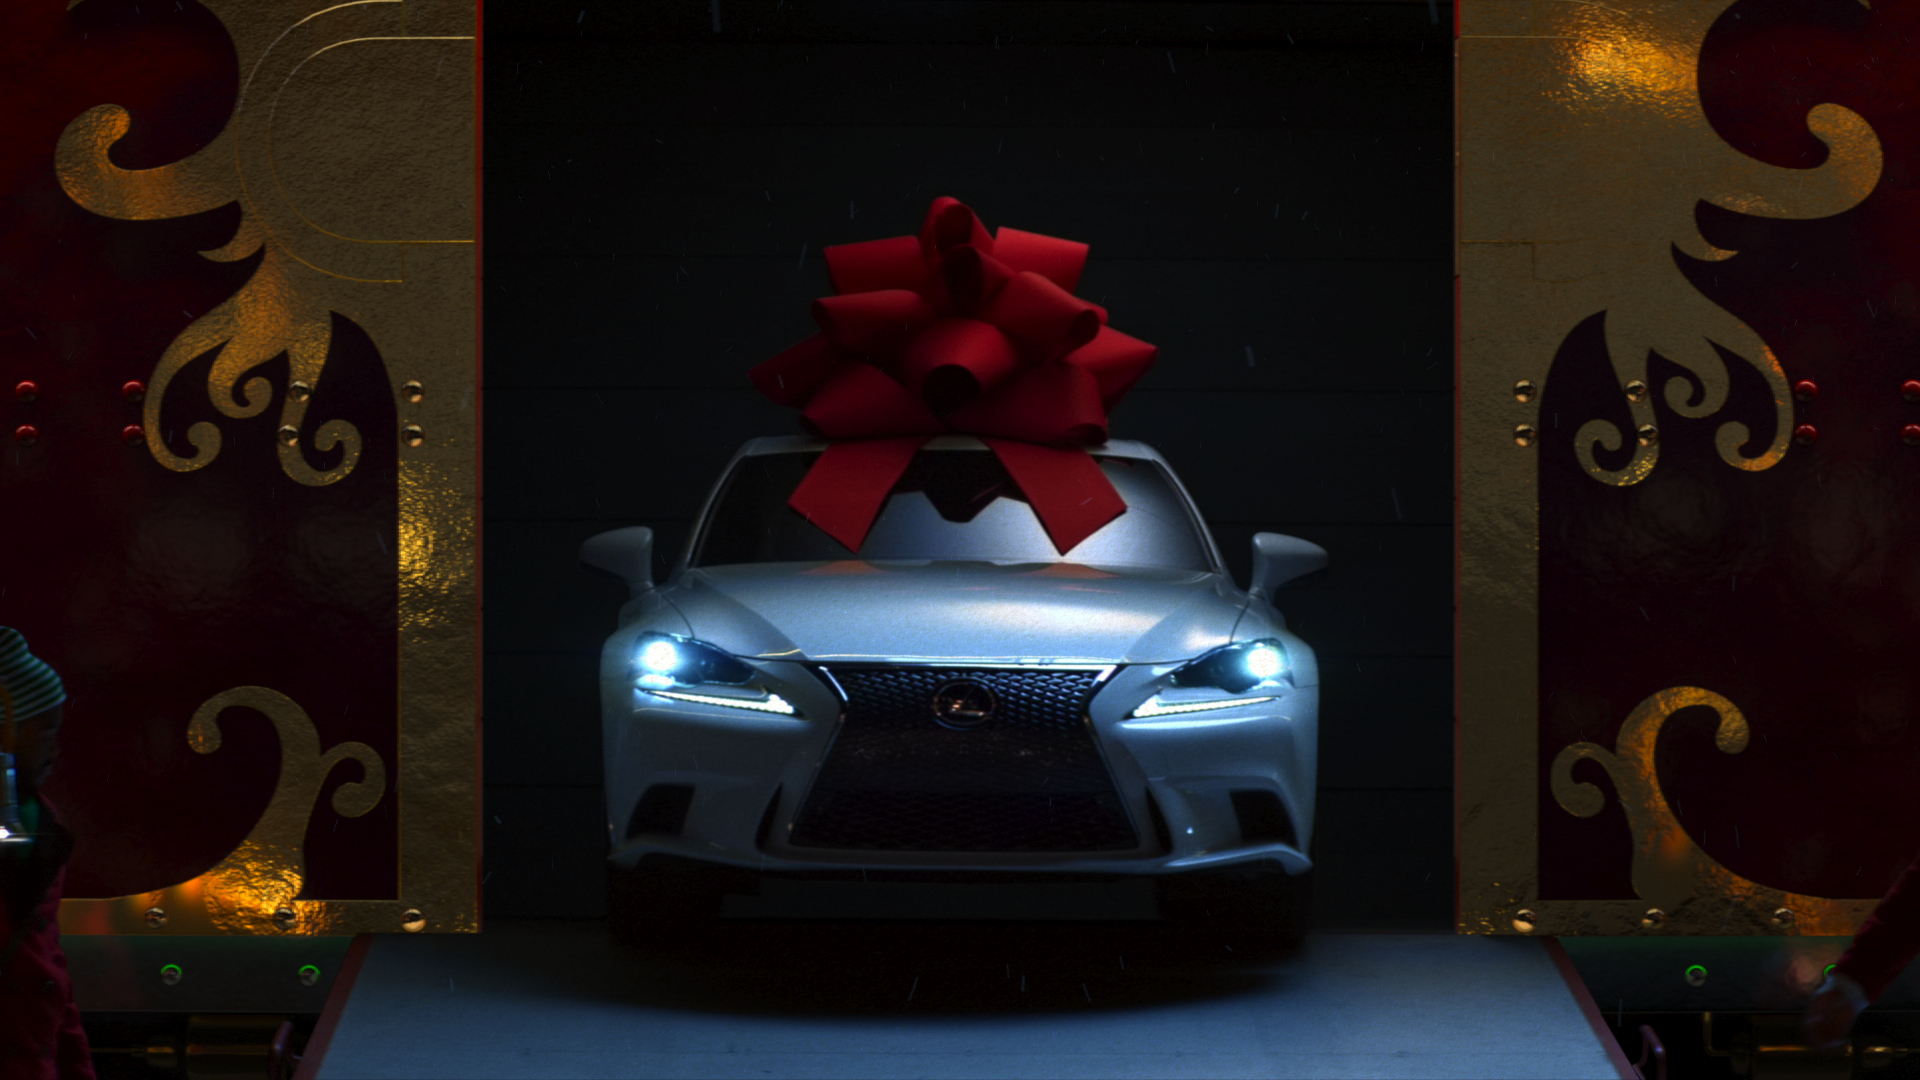 http://www.multivu.com/players/English/7371851-lexus-celebrates-holiday-magic-december-sales-event-campaign/gallery/image/275de2b1-a015-4de2-8670-ed68c09da4ae.HR.jpg